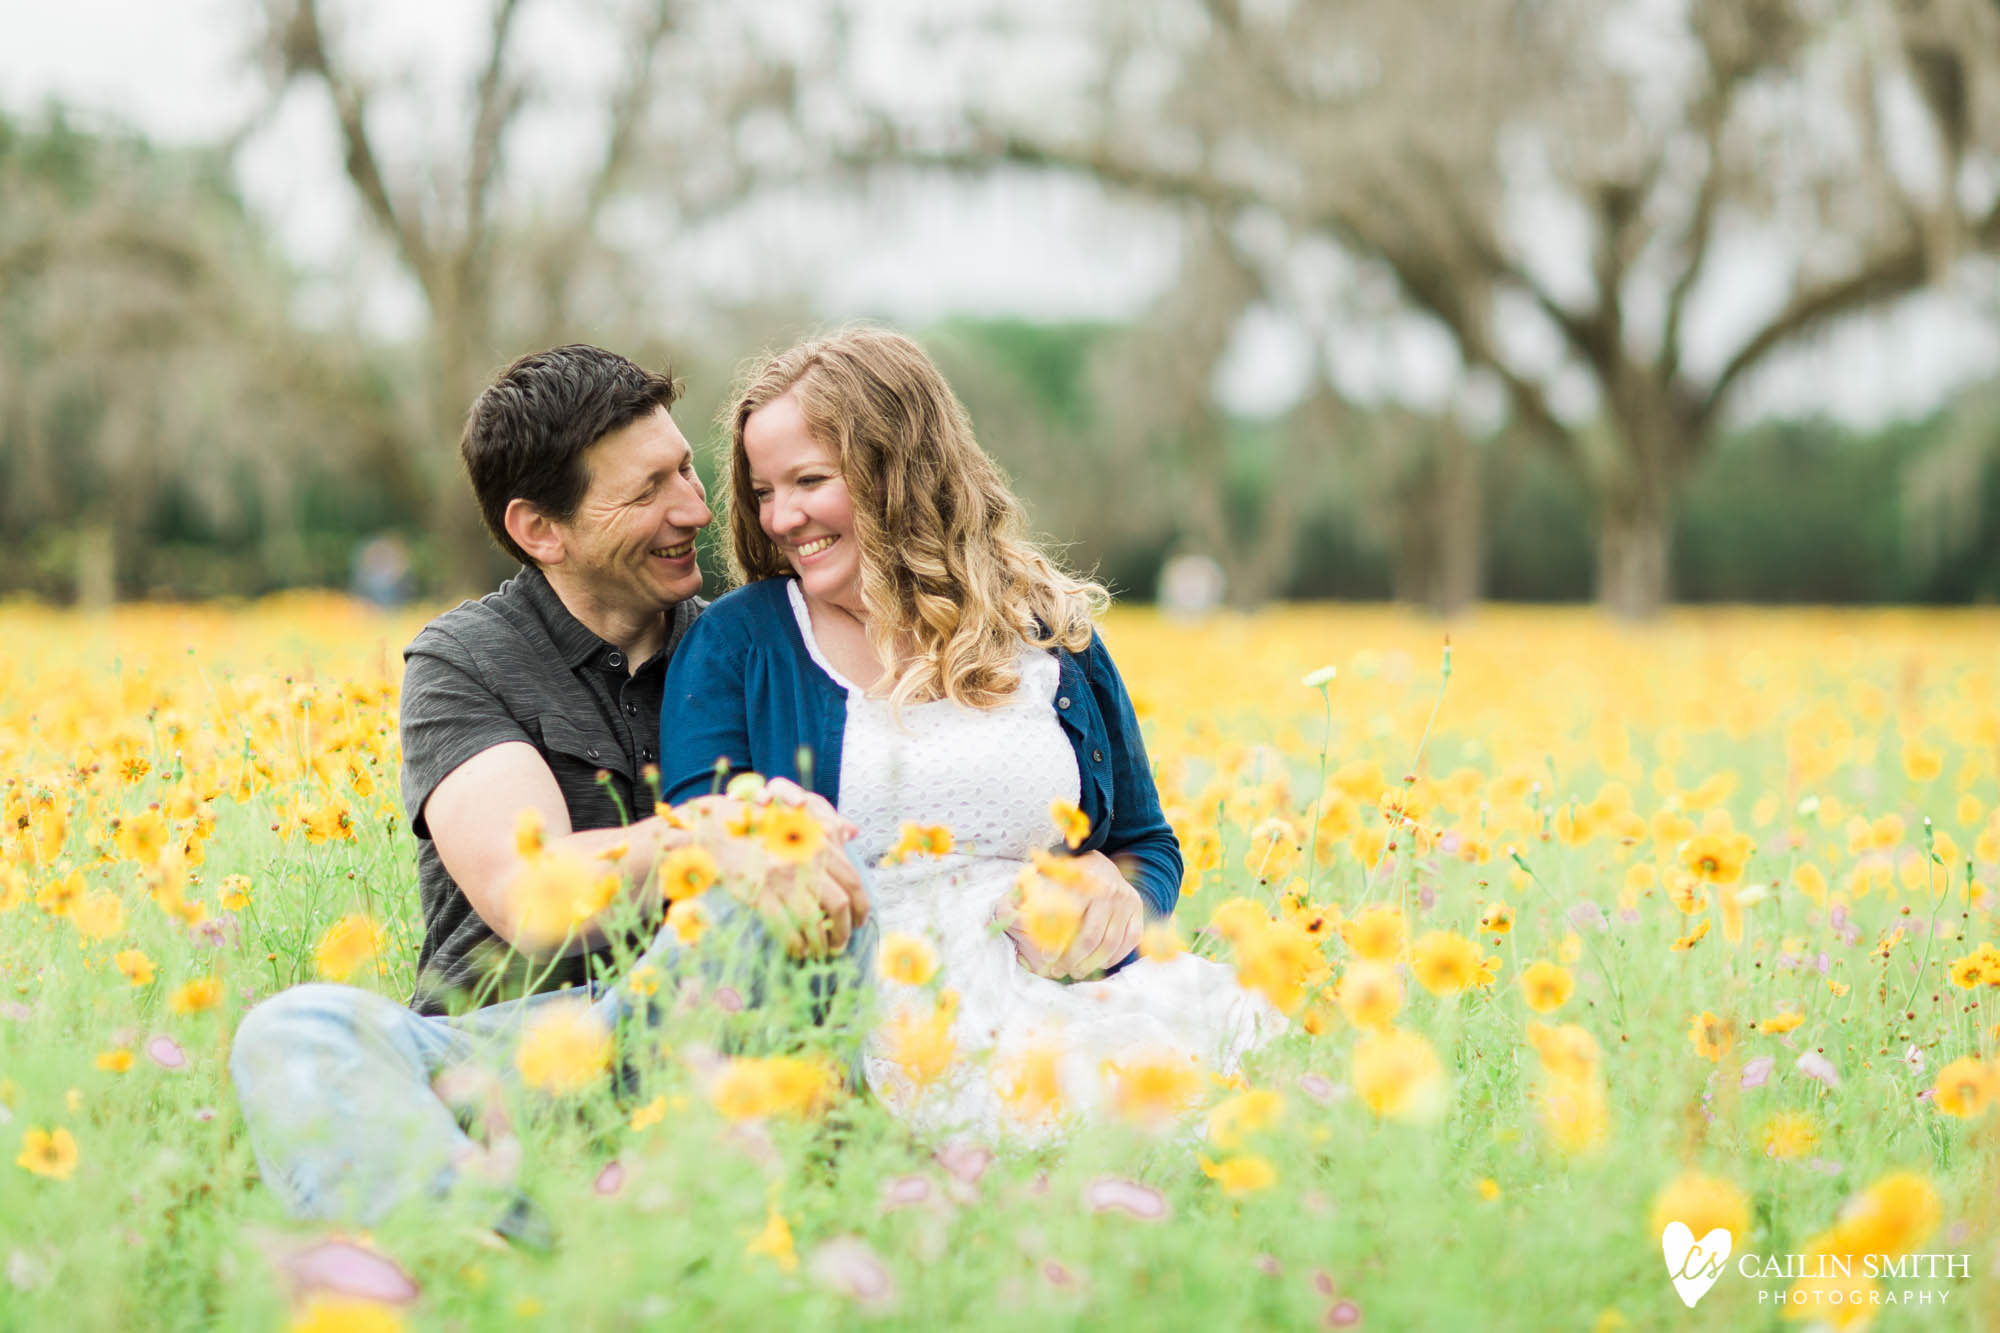 Christie_Nathan_Flower_Field_engagement_Photography_015.jpg